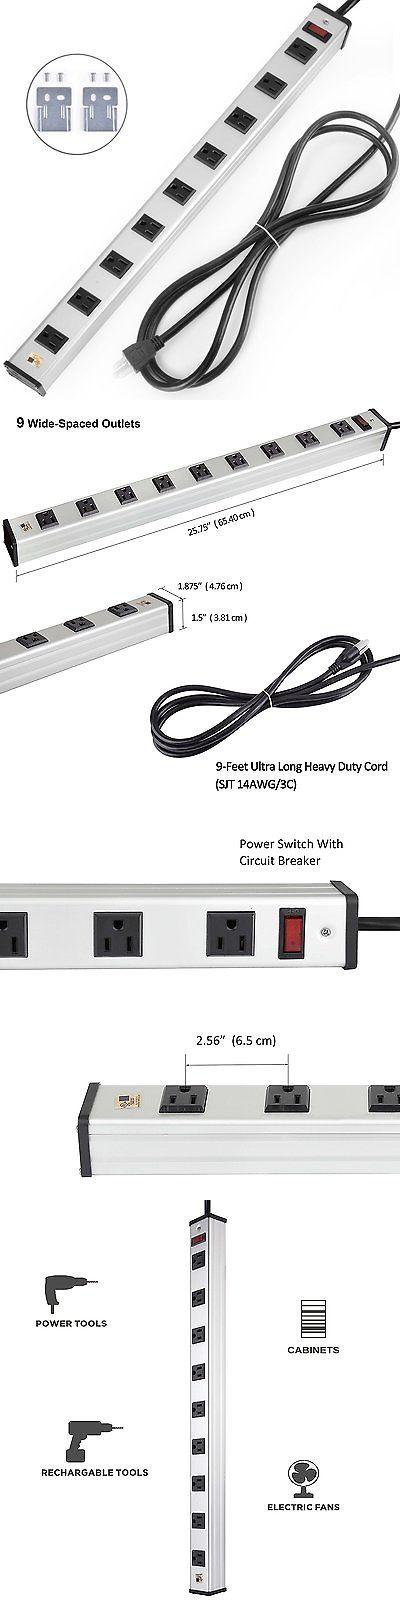 Surge Protectors Power Strips: Bestten 9 Outlet Heavy Duty Metal Surge Protector Power Strip, 9-Foot Extension BUY IT NOW ONLY: $44.85